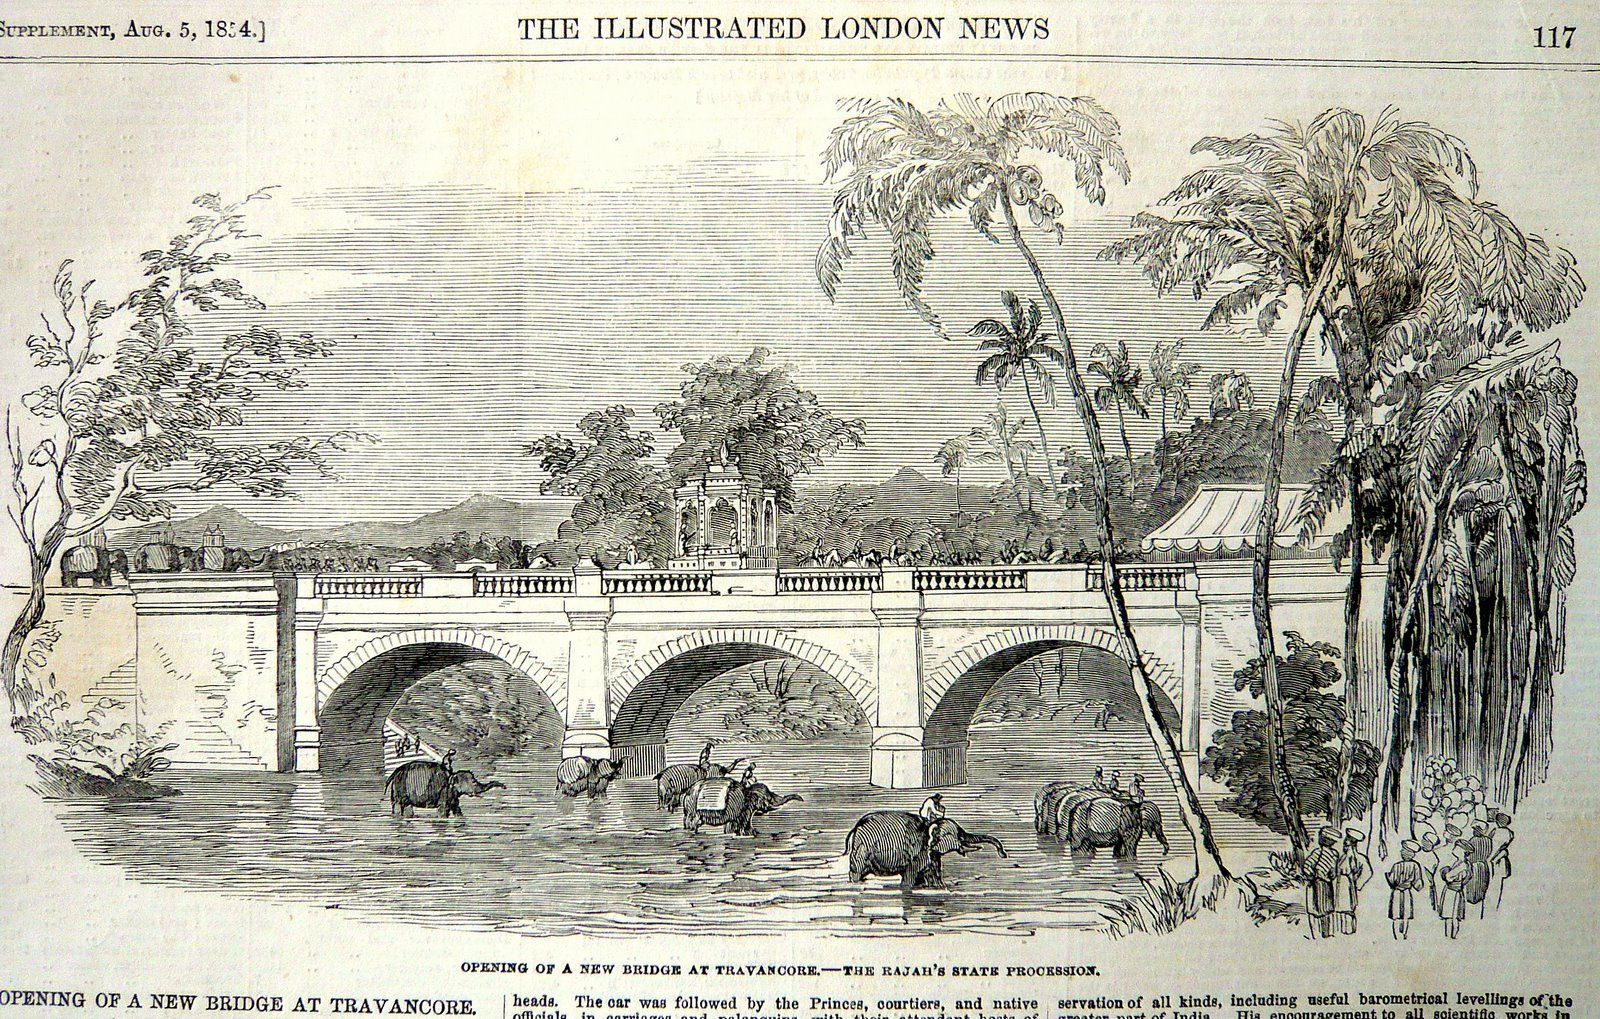 [Illustrated+London+News+of+5th+August+1854+about+Opening+of+a+bridge+at+Travancore2.JPG]